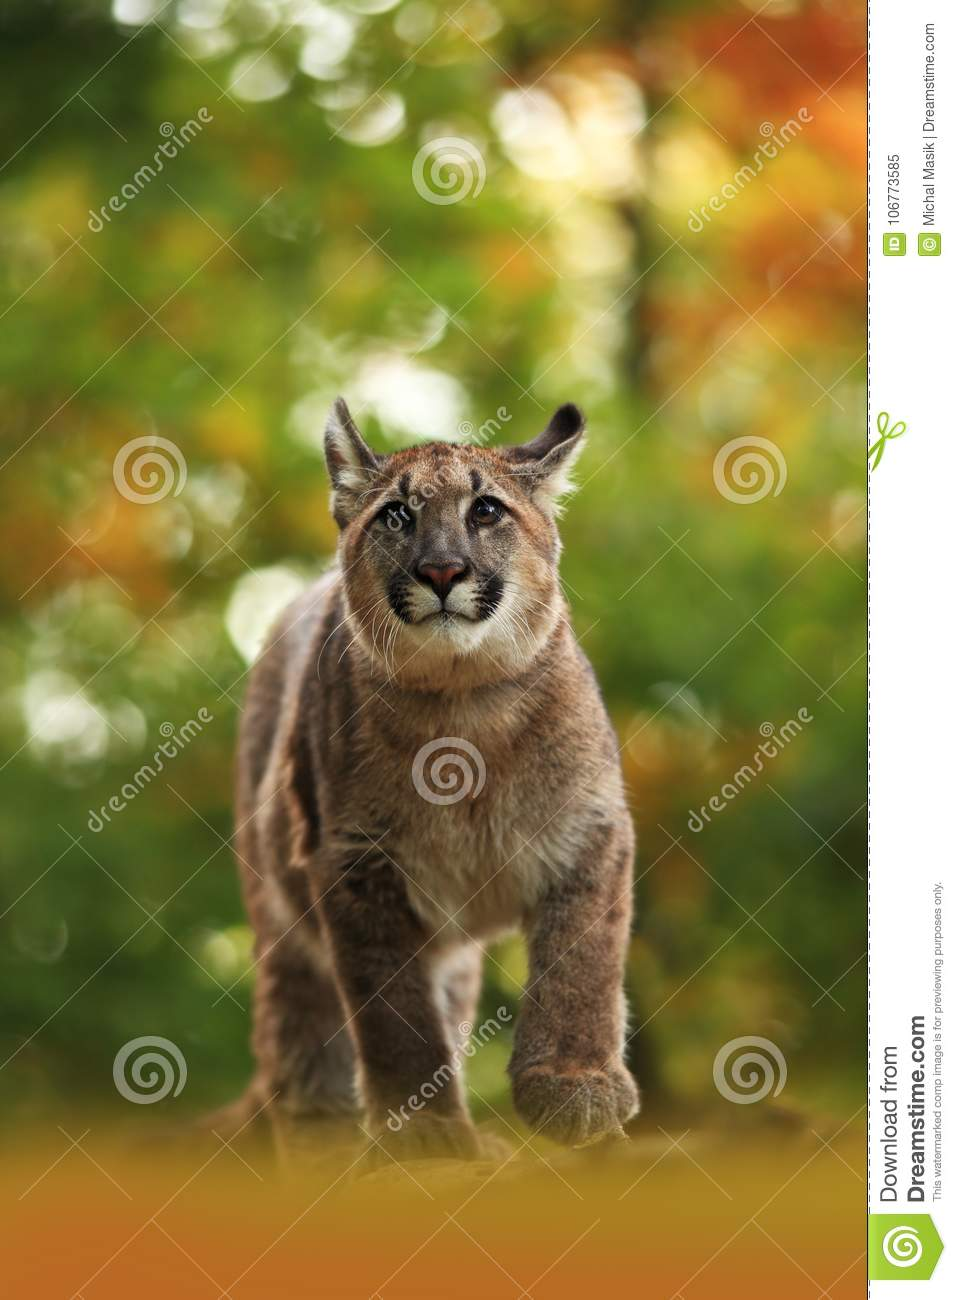 Cougar is the largest feline of North America.